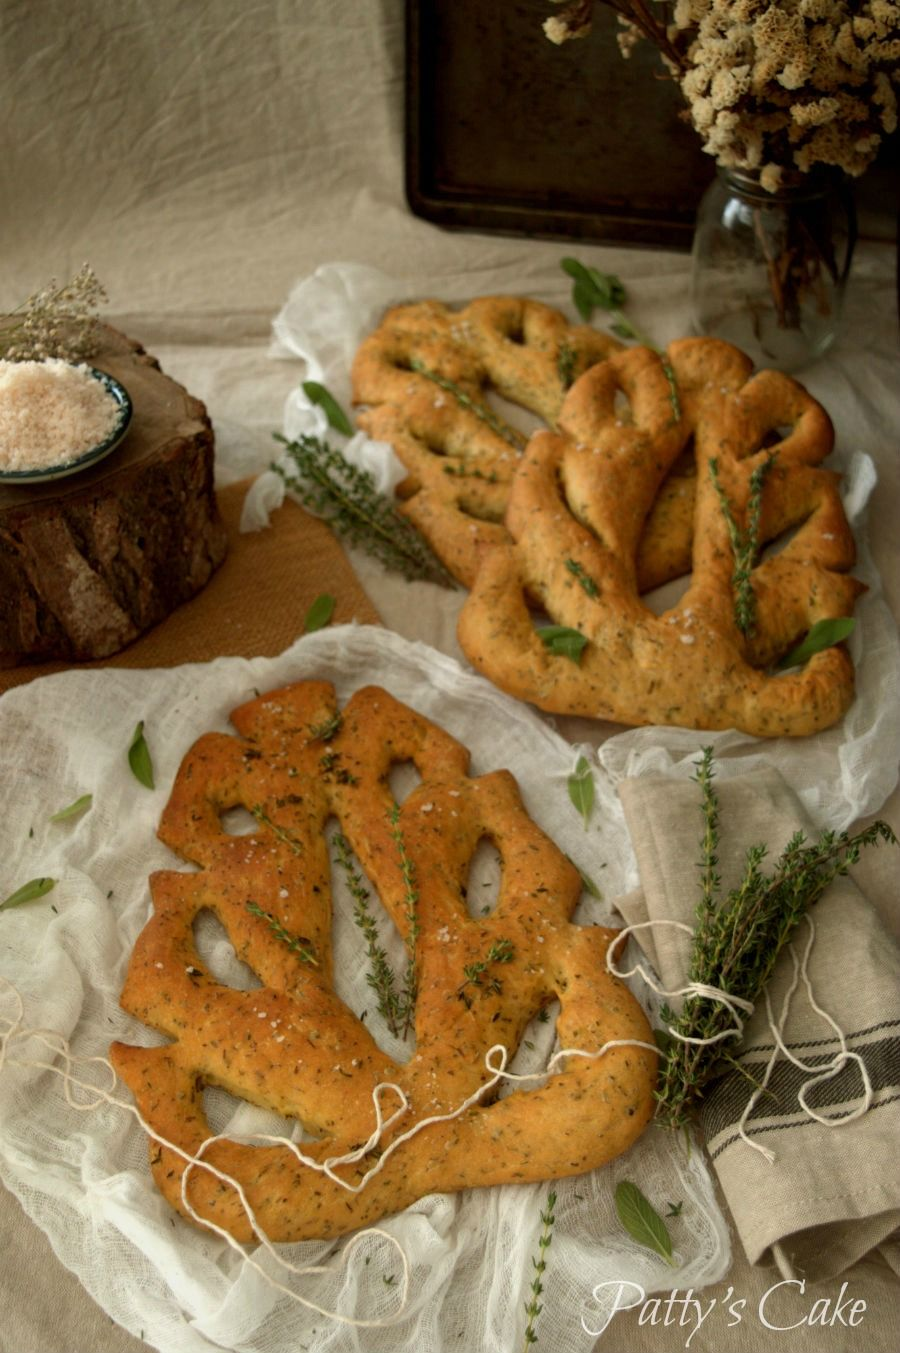 Provenal herbs fougasse how to make this delicious bread in provenal herbs fougasse how to make this delicious bread in pattys cake english forumfinder Image collections